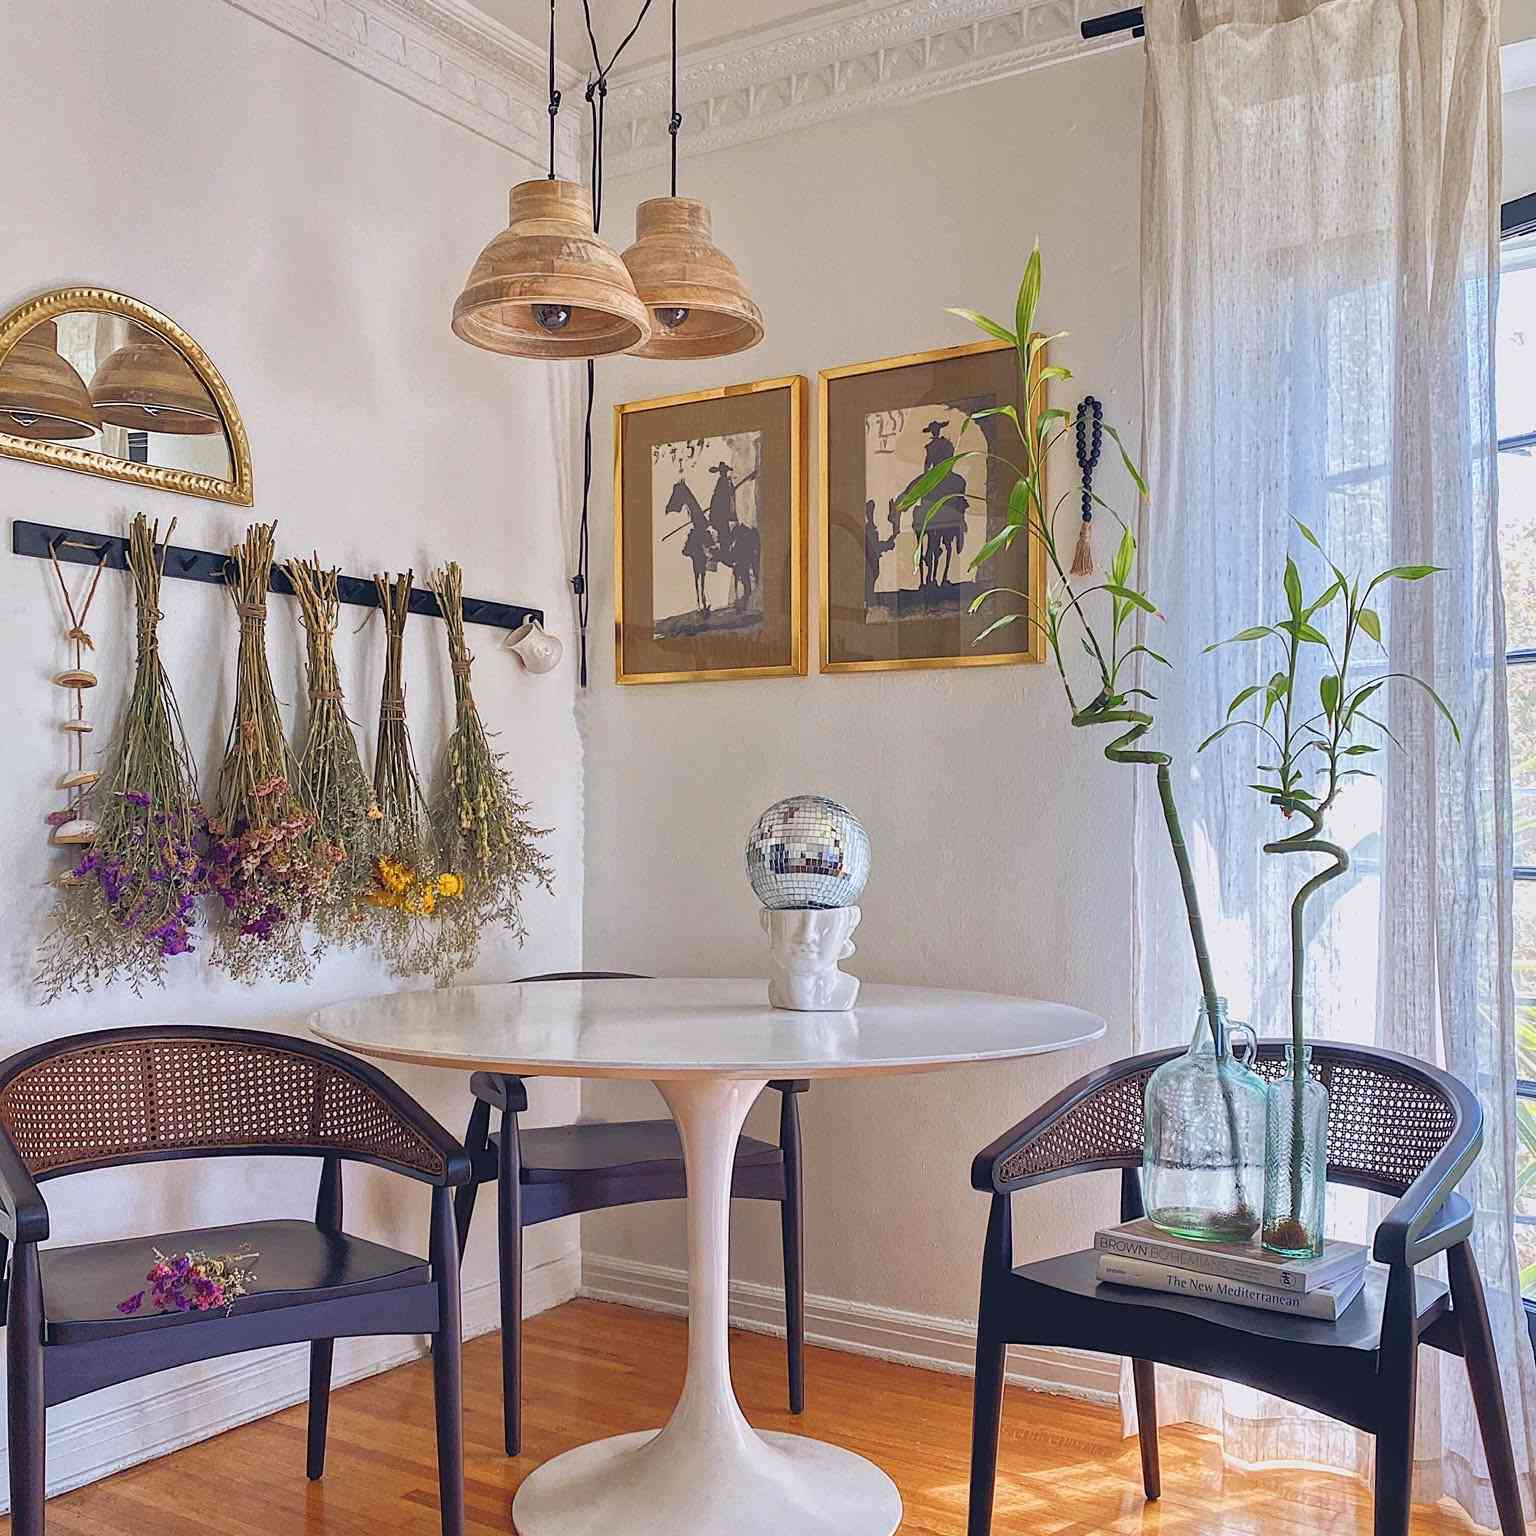 Trendy dining nook with dried florals and rattan pendant lights.